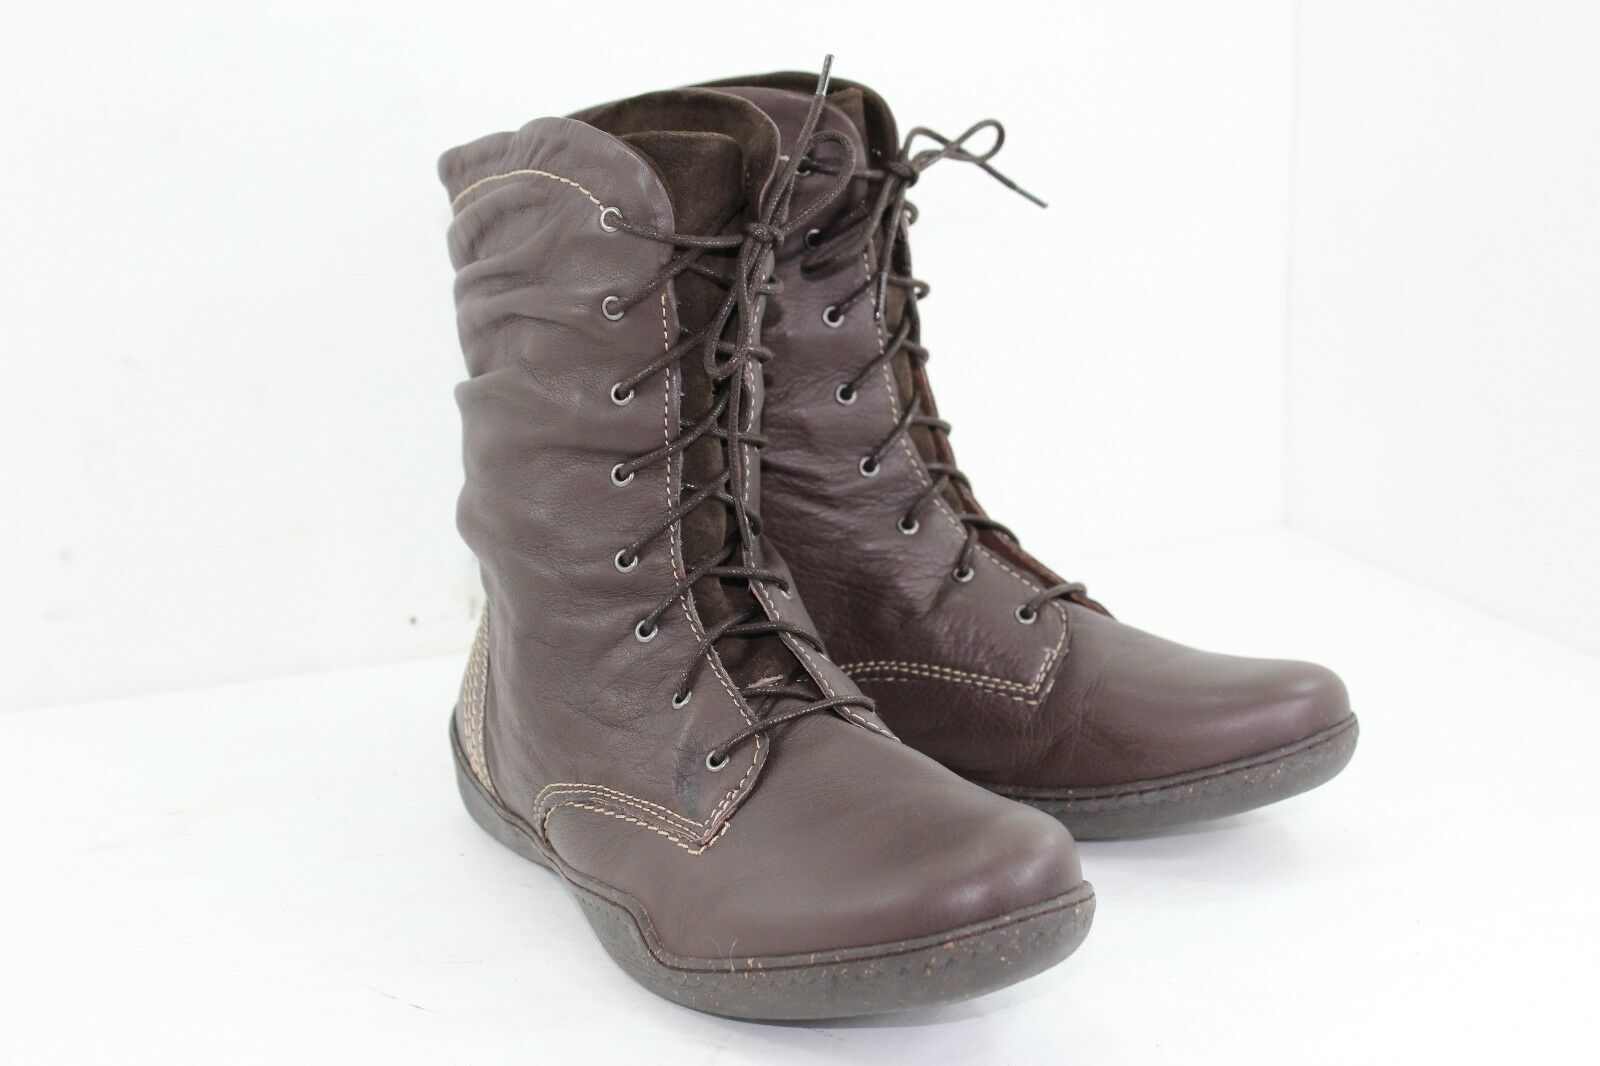 SANITA BOOTS SIZE 41 US SIZE 10 BROWNS ALL LEATHER IN GREAT CONDITION